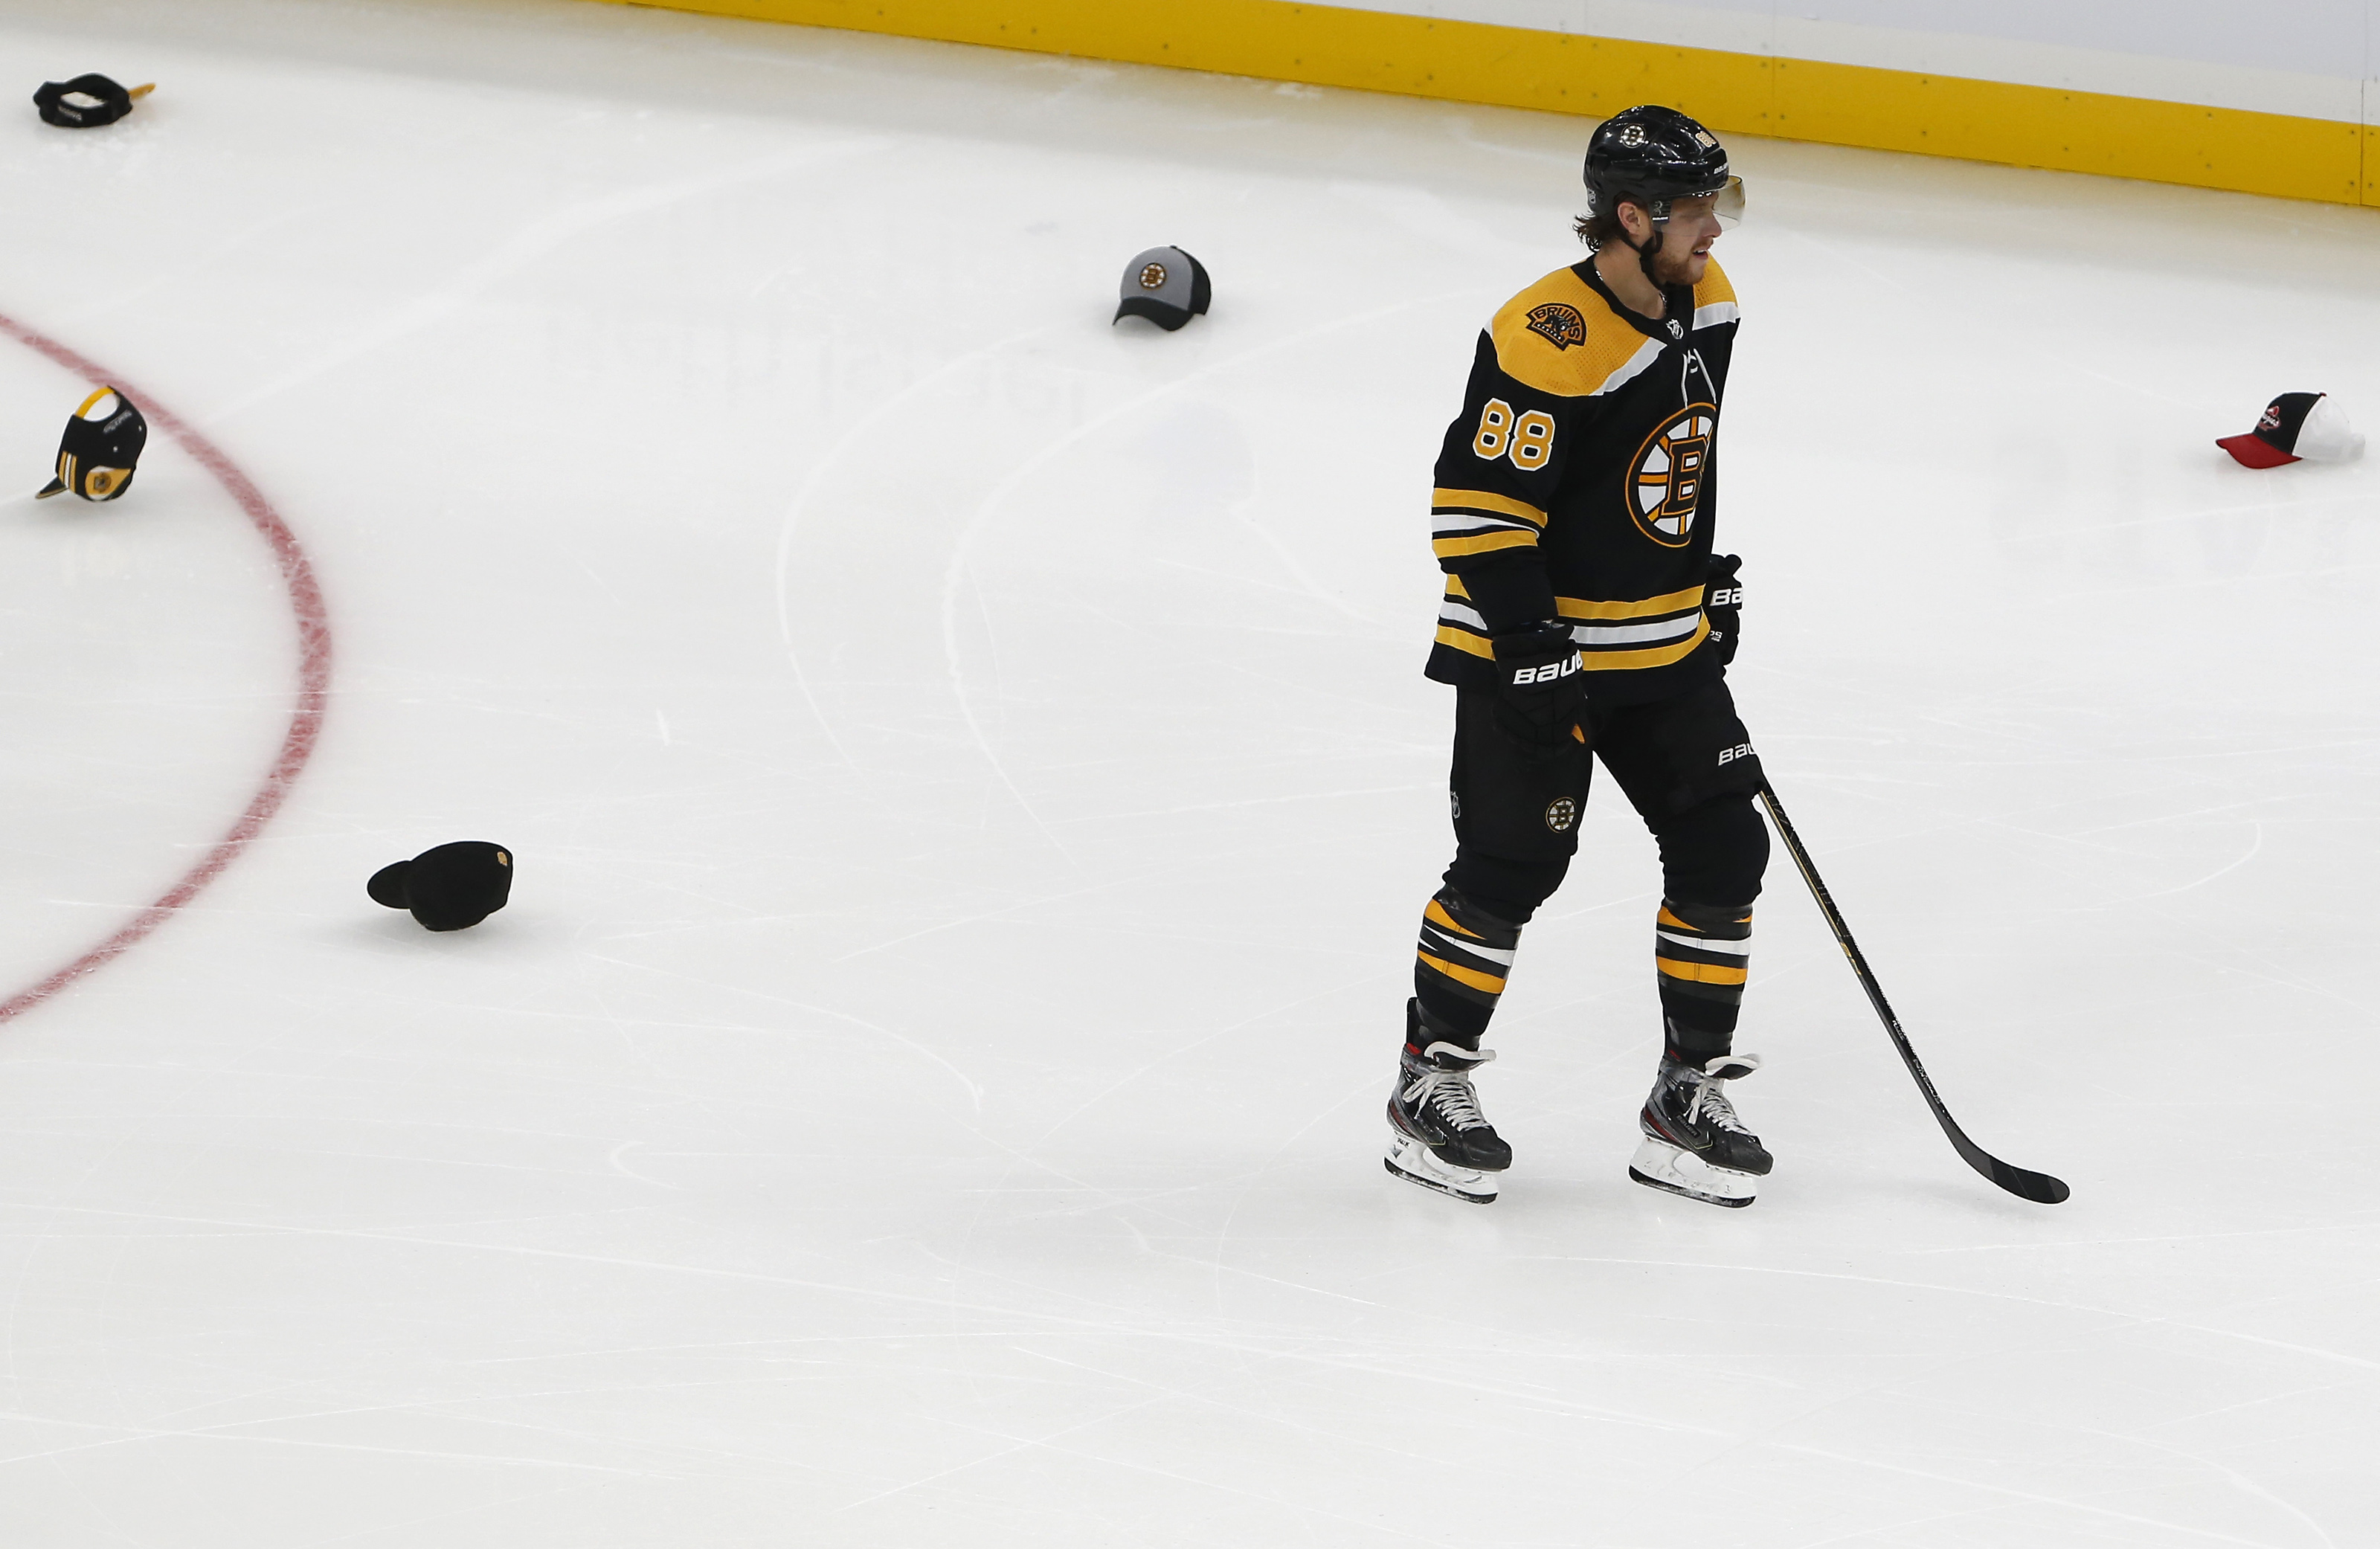 David Pastrnak growing into role as chief scoring threat